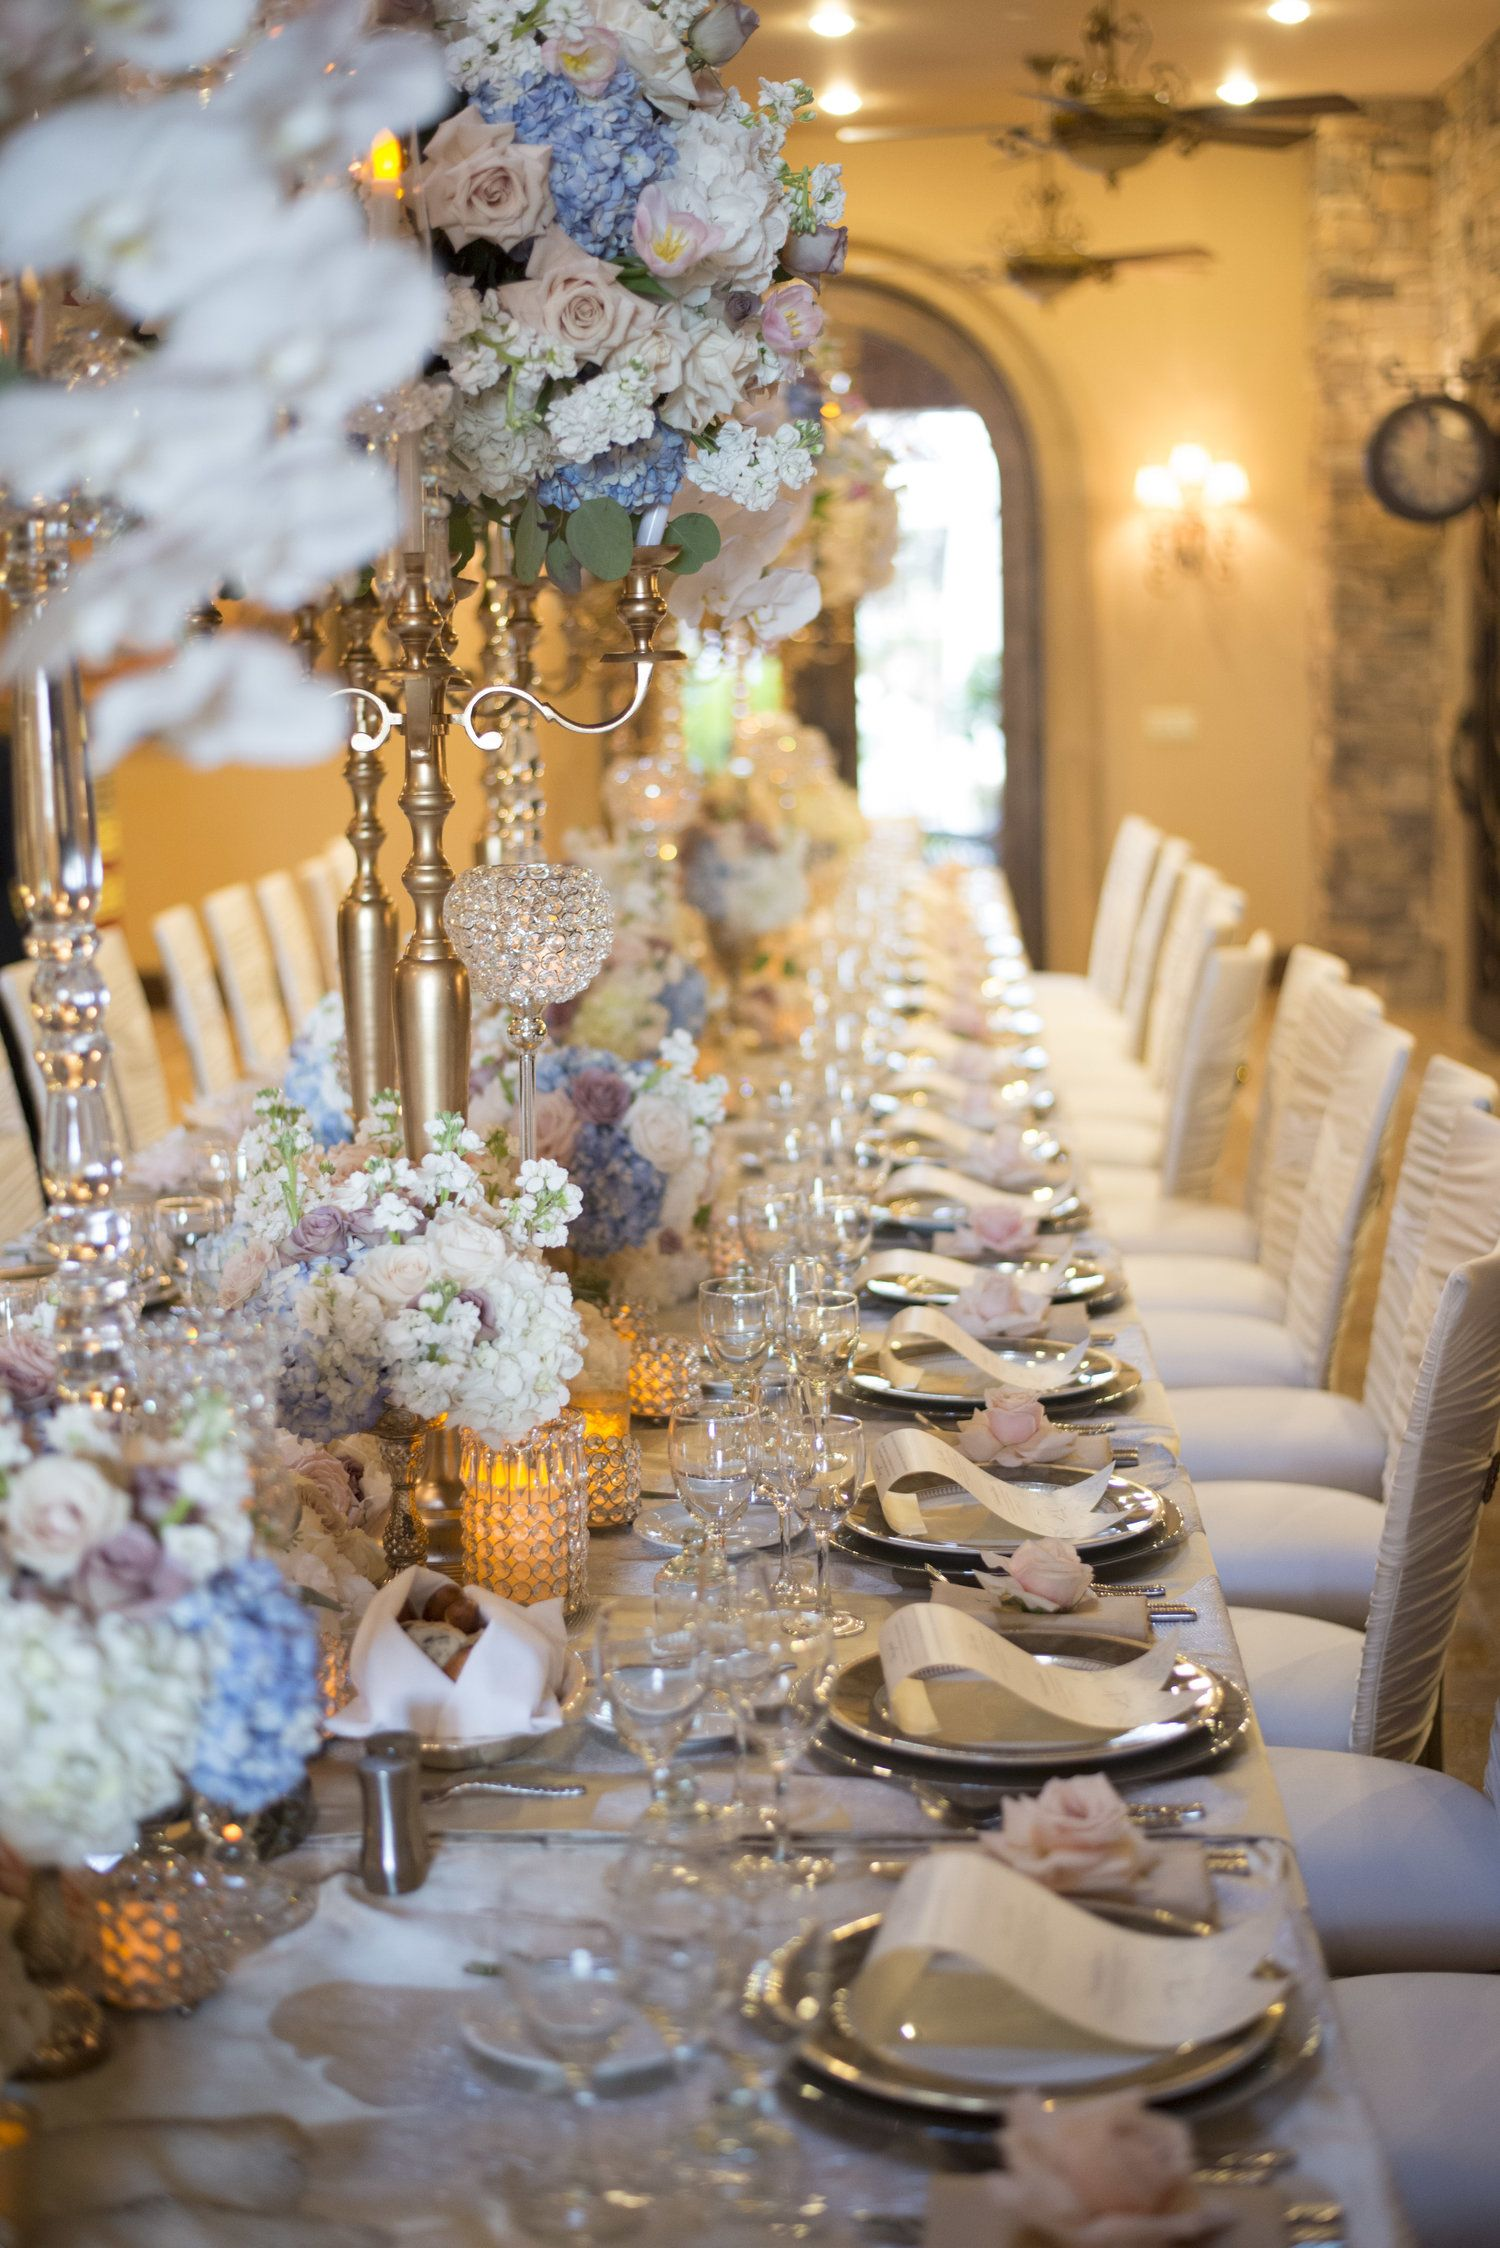 Luxury Wedding With Tall Centerpiece They Wanted A Royal Wedding